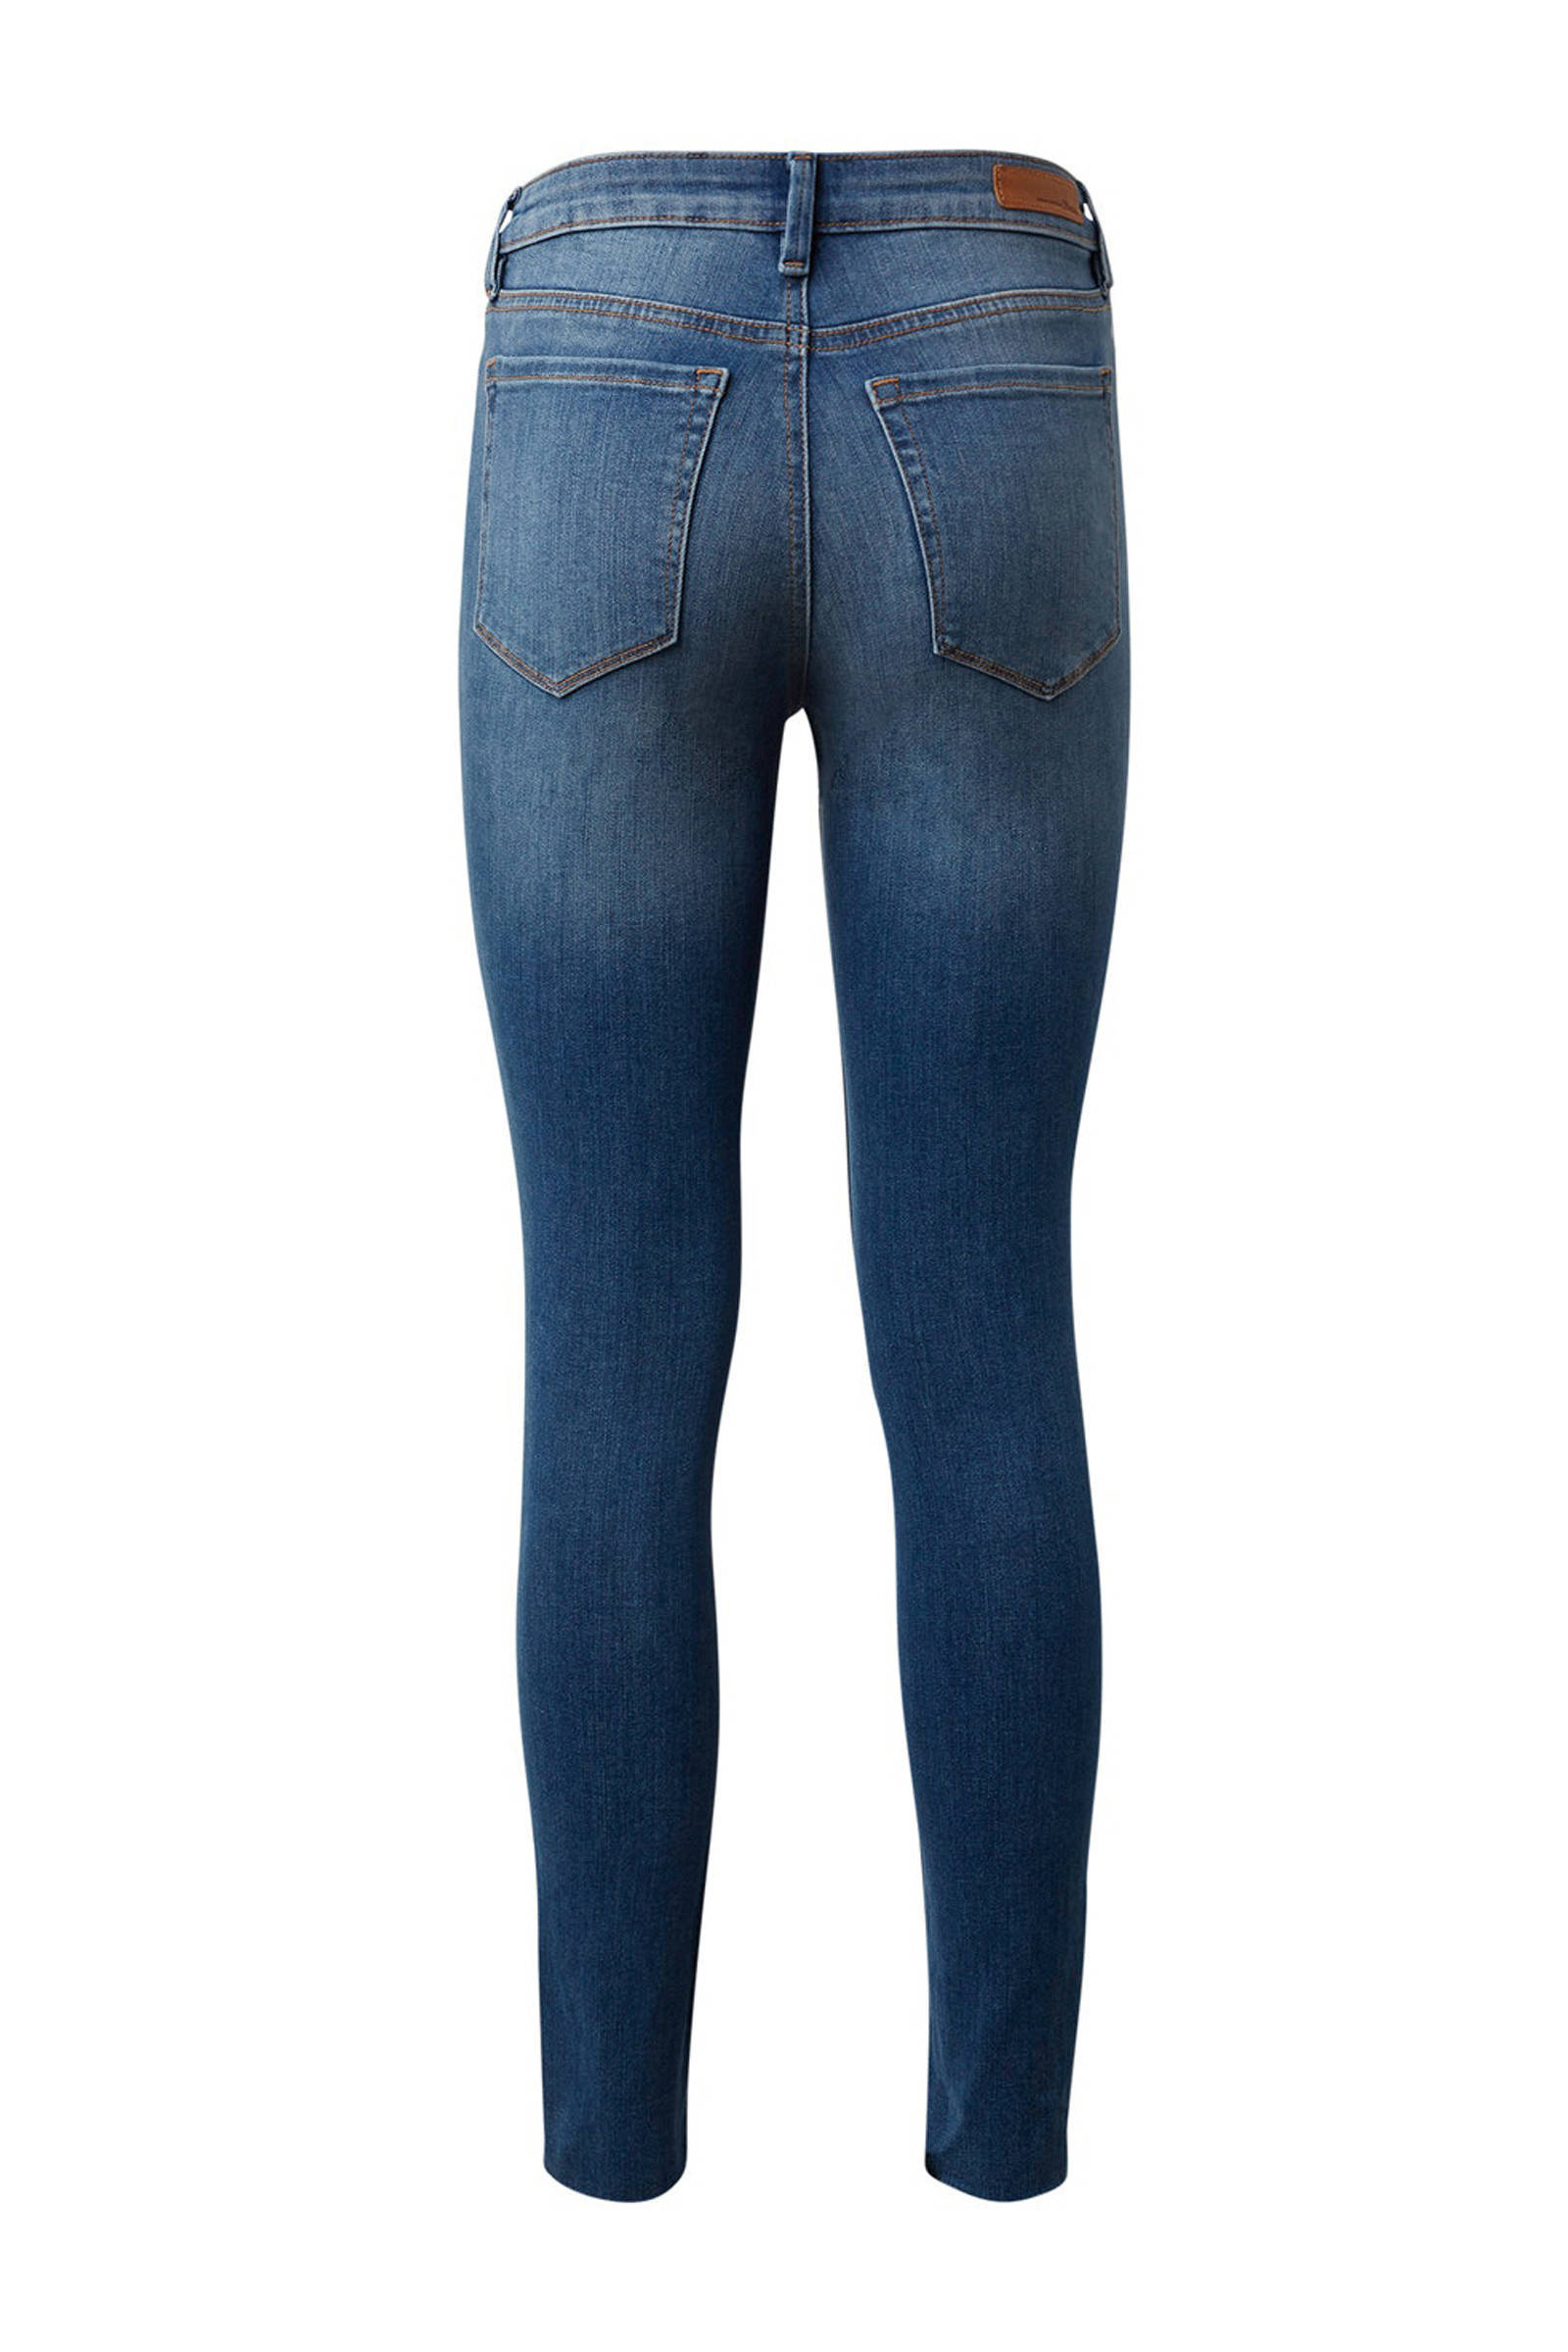 Tom Tailor Denim skinny jeans Tom tailor denim nela blauw in